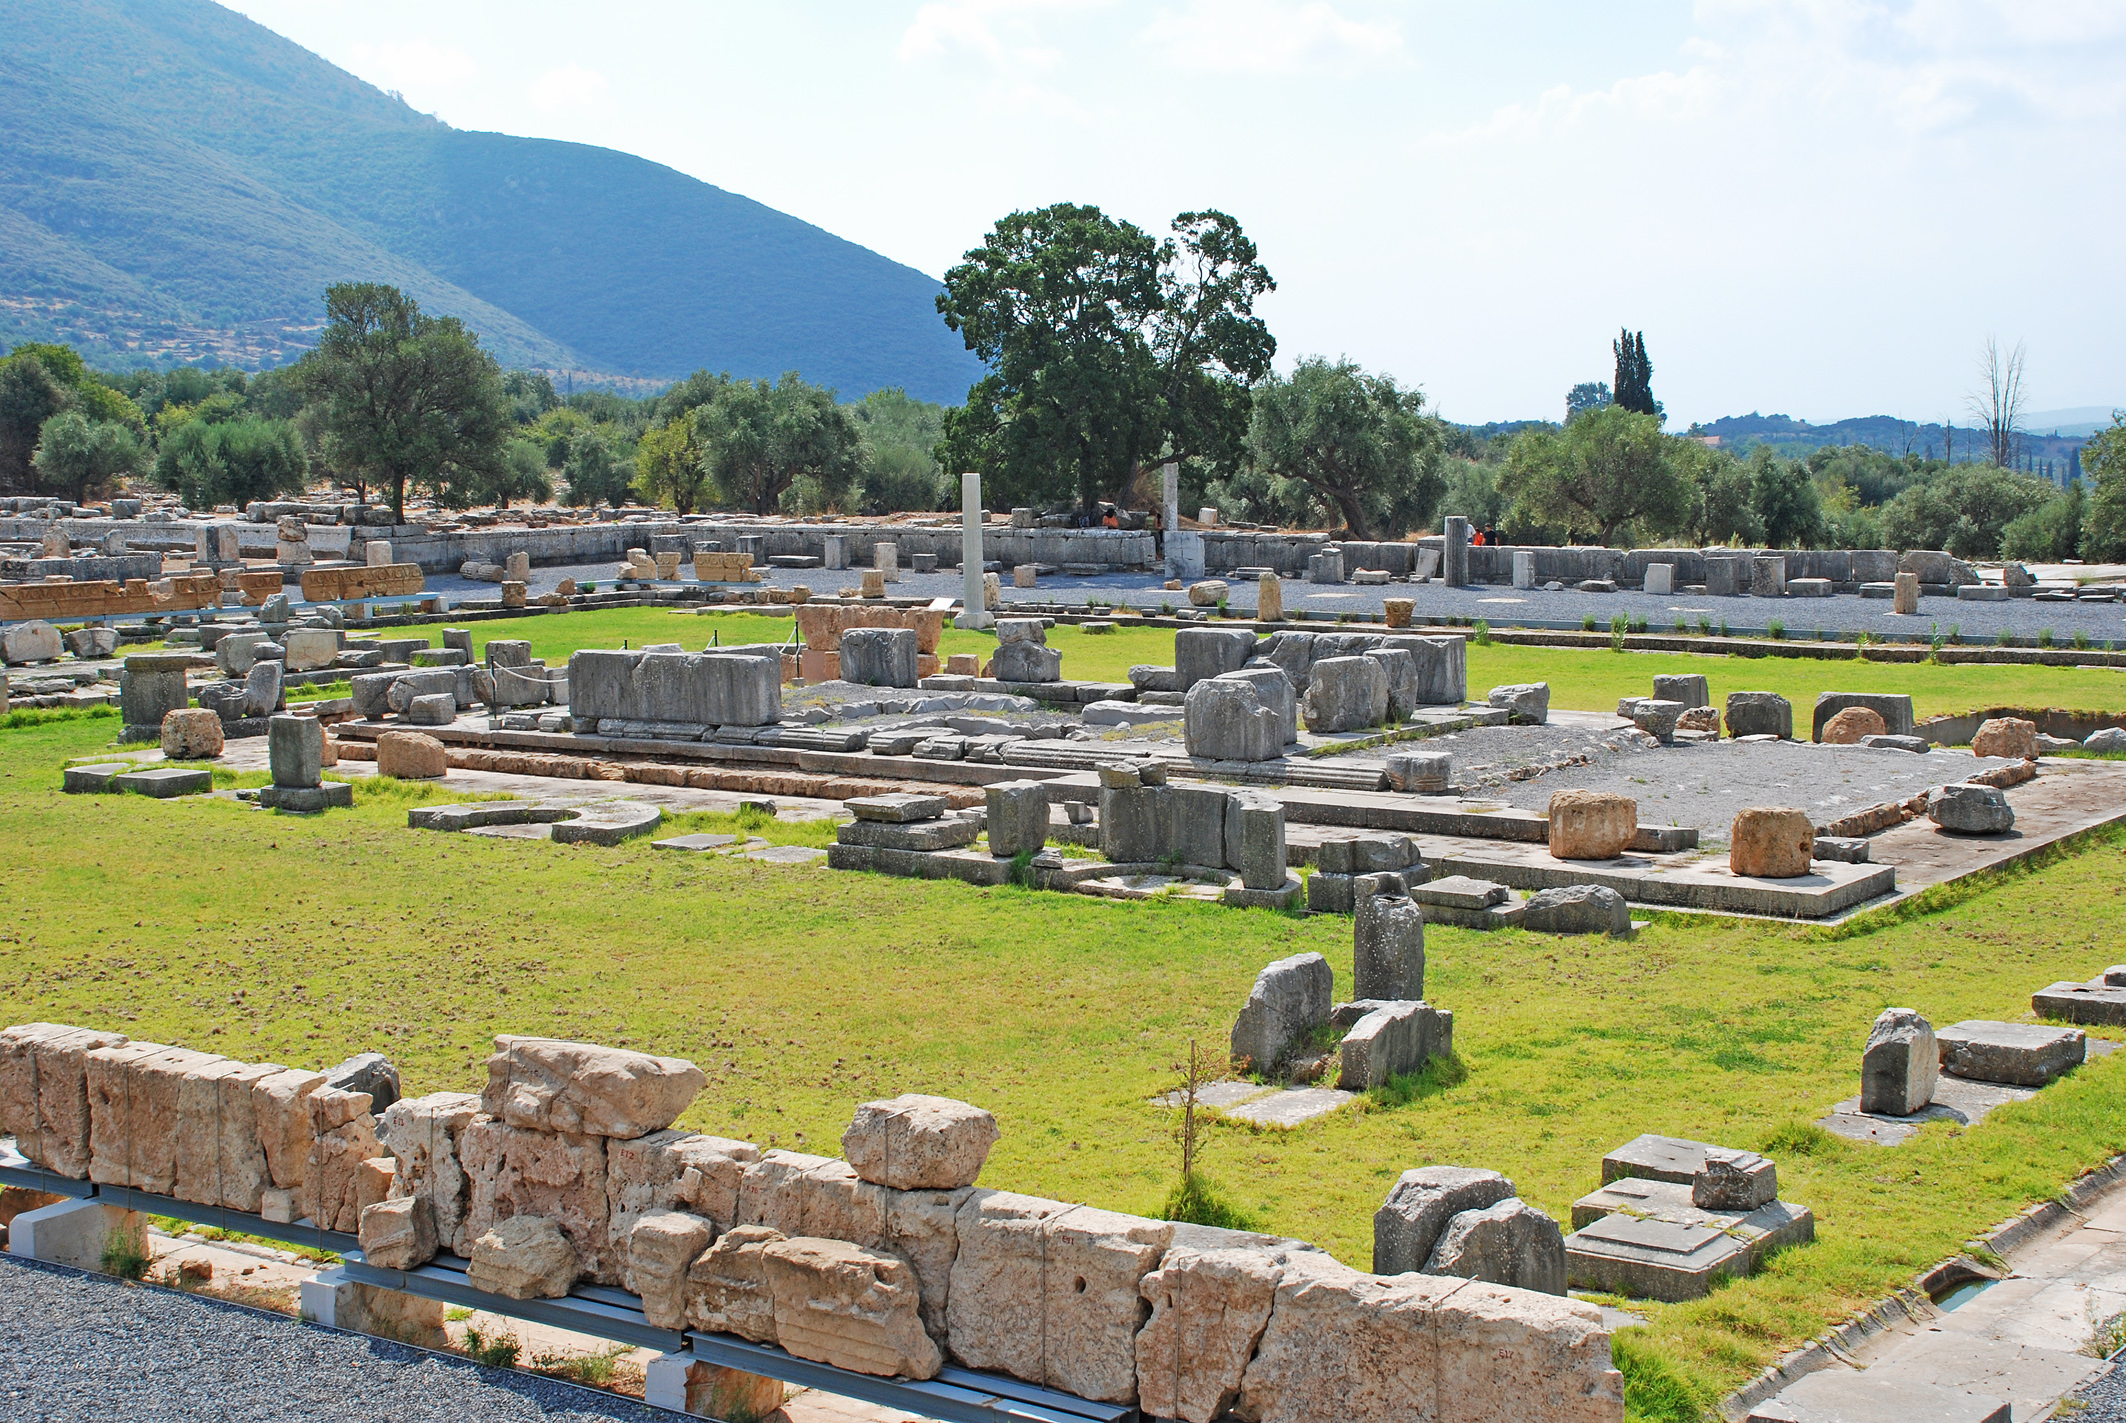 Messene, Greece - Monterrasol small group tours to Messene, Greece. Travel agency offers small group car tours to see Messene in Greece. Order small group tour to Messene with departure date on request.